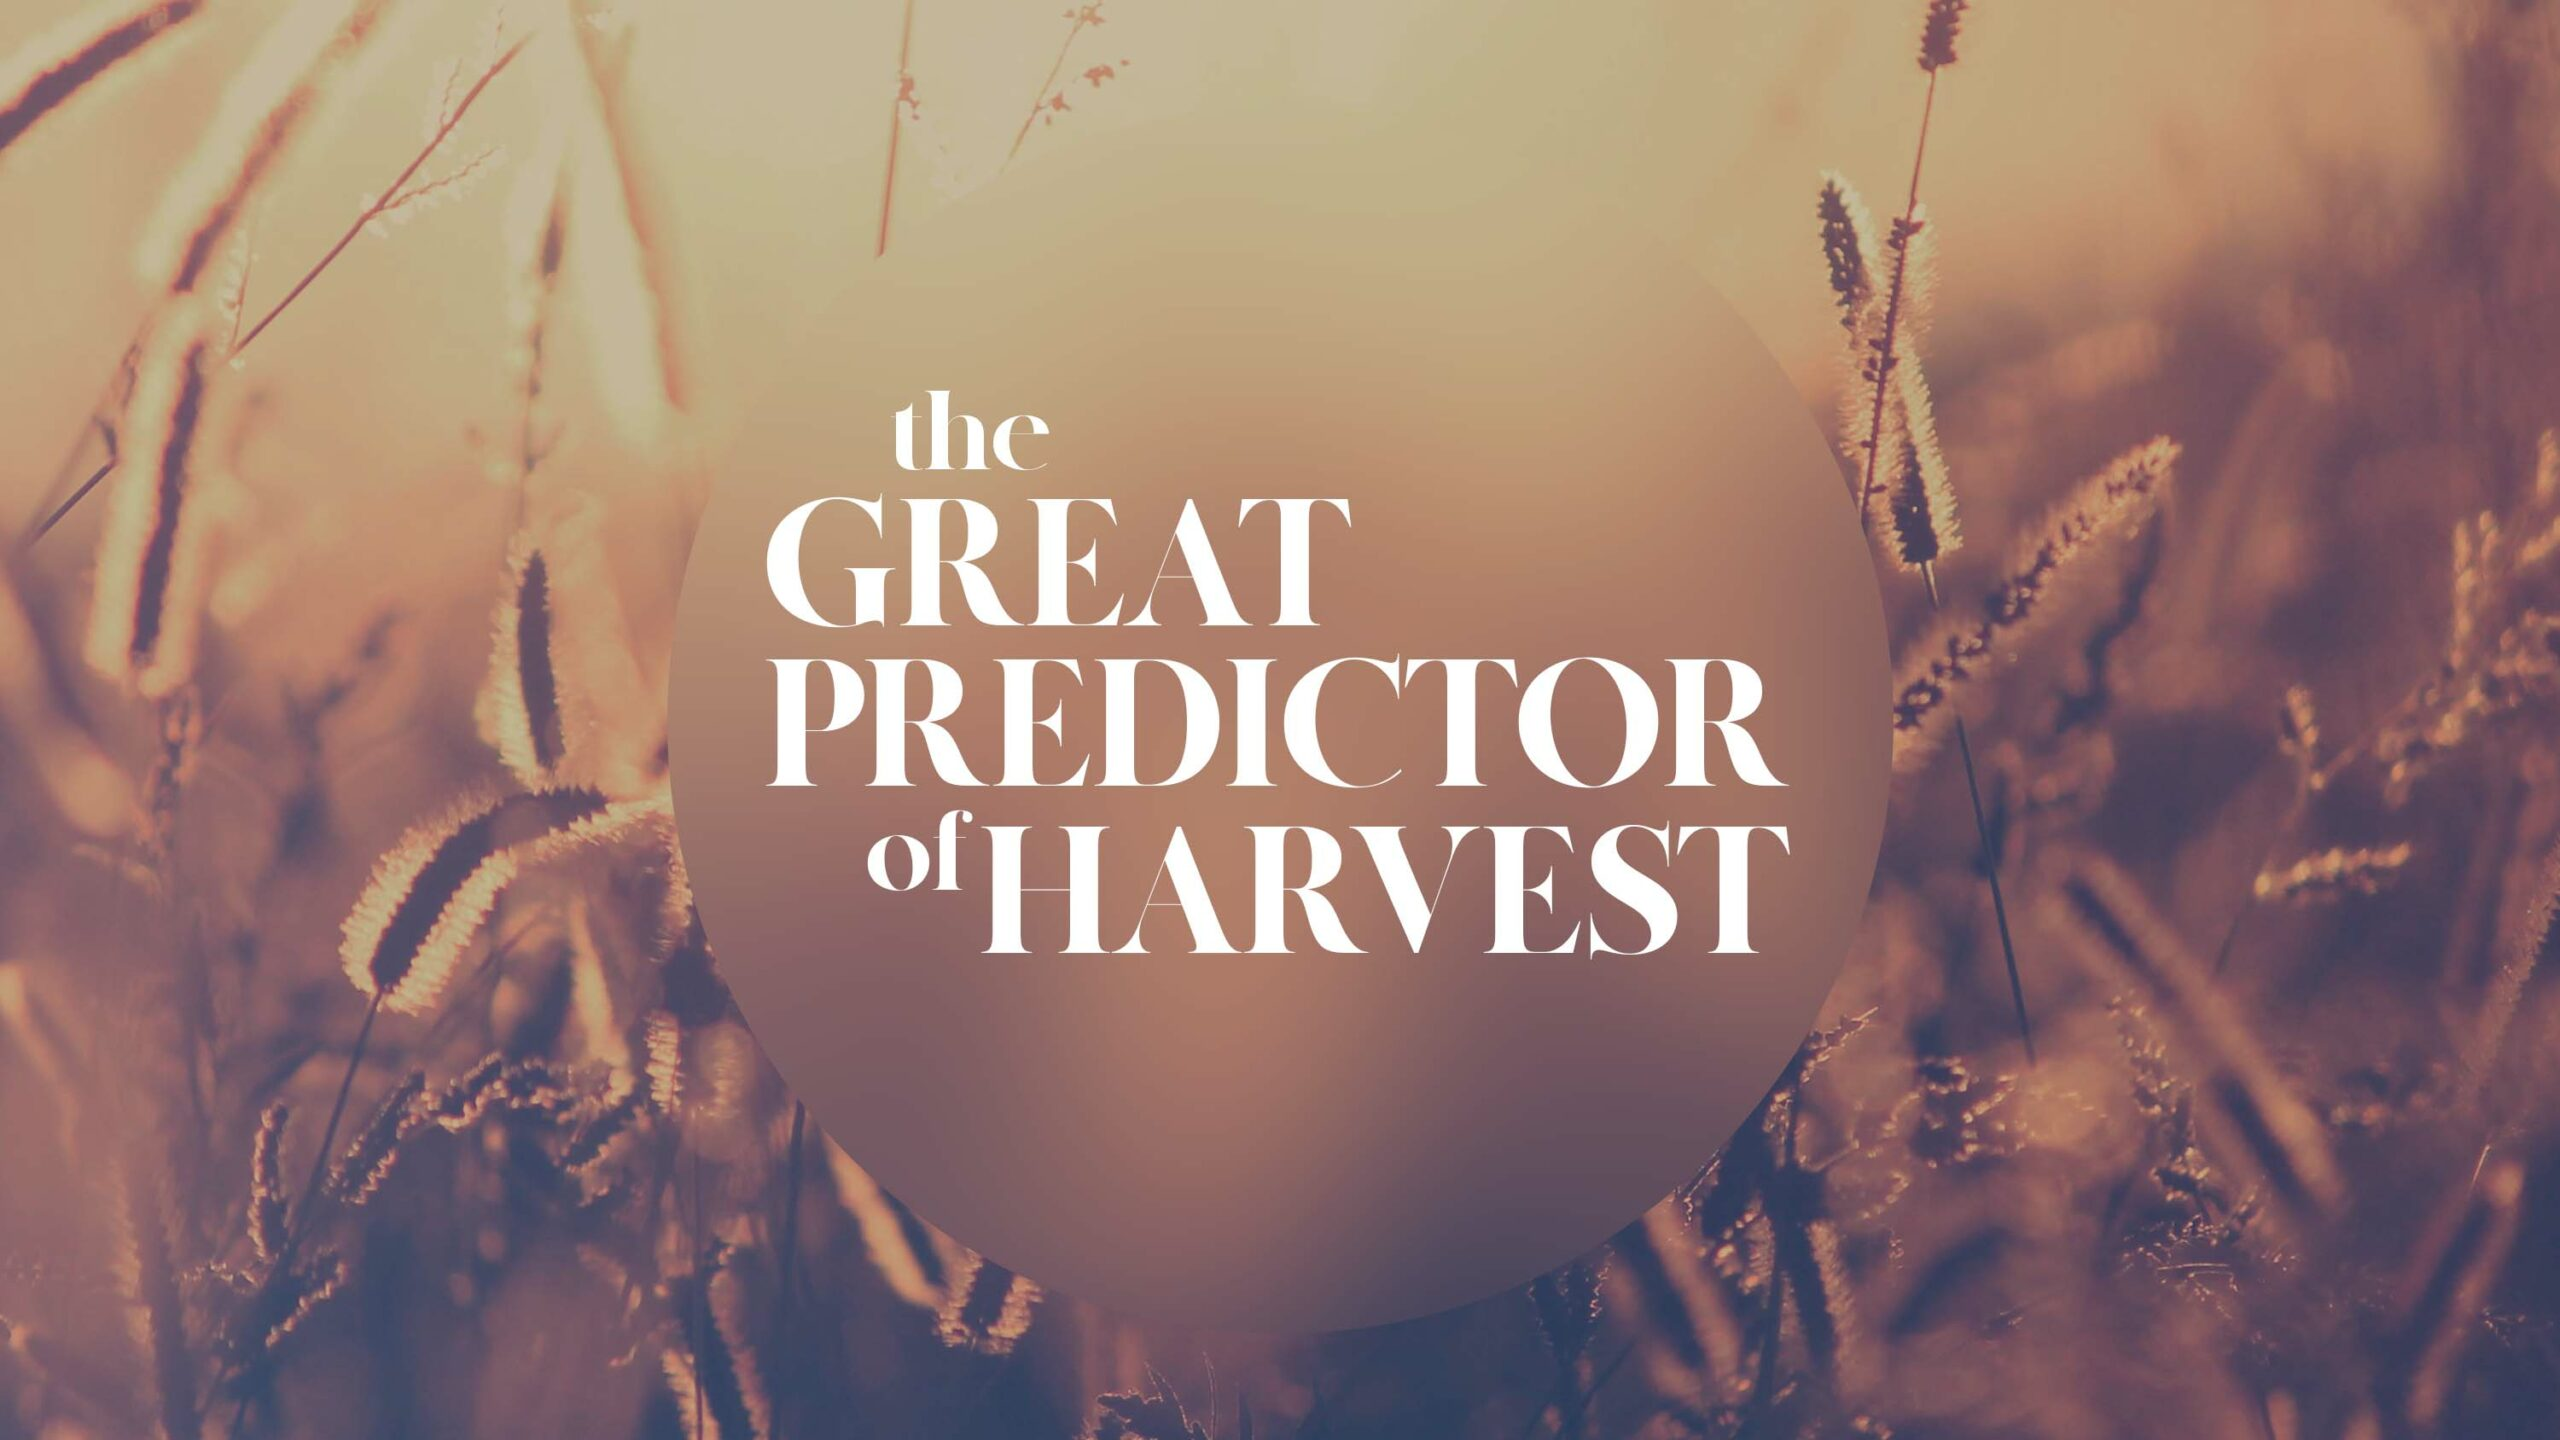 The Great Predictor of Harvest